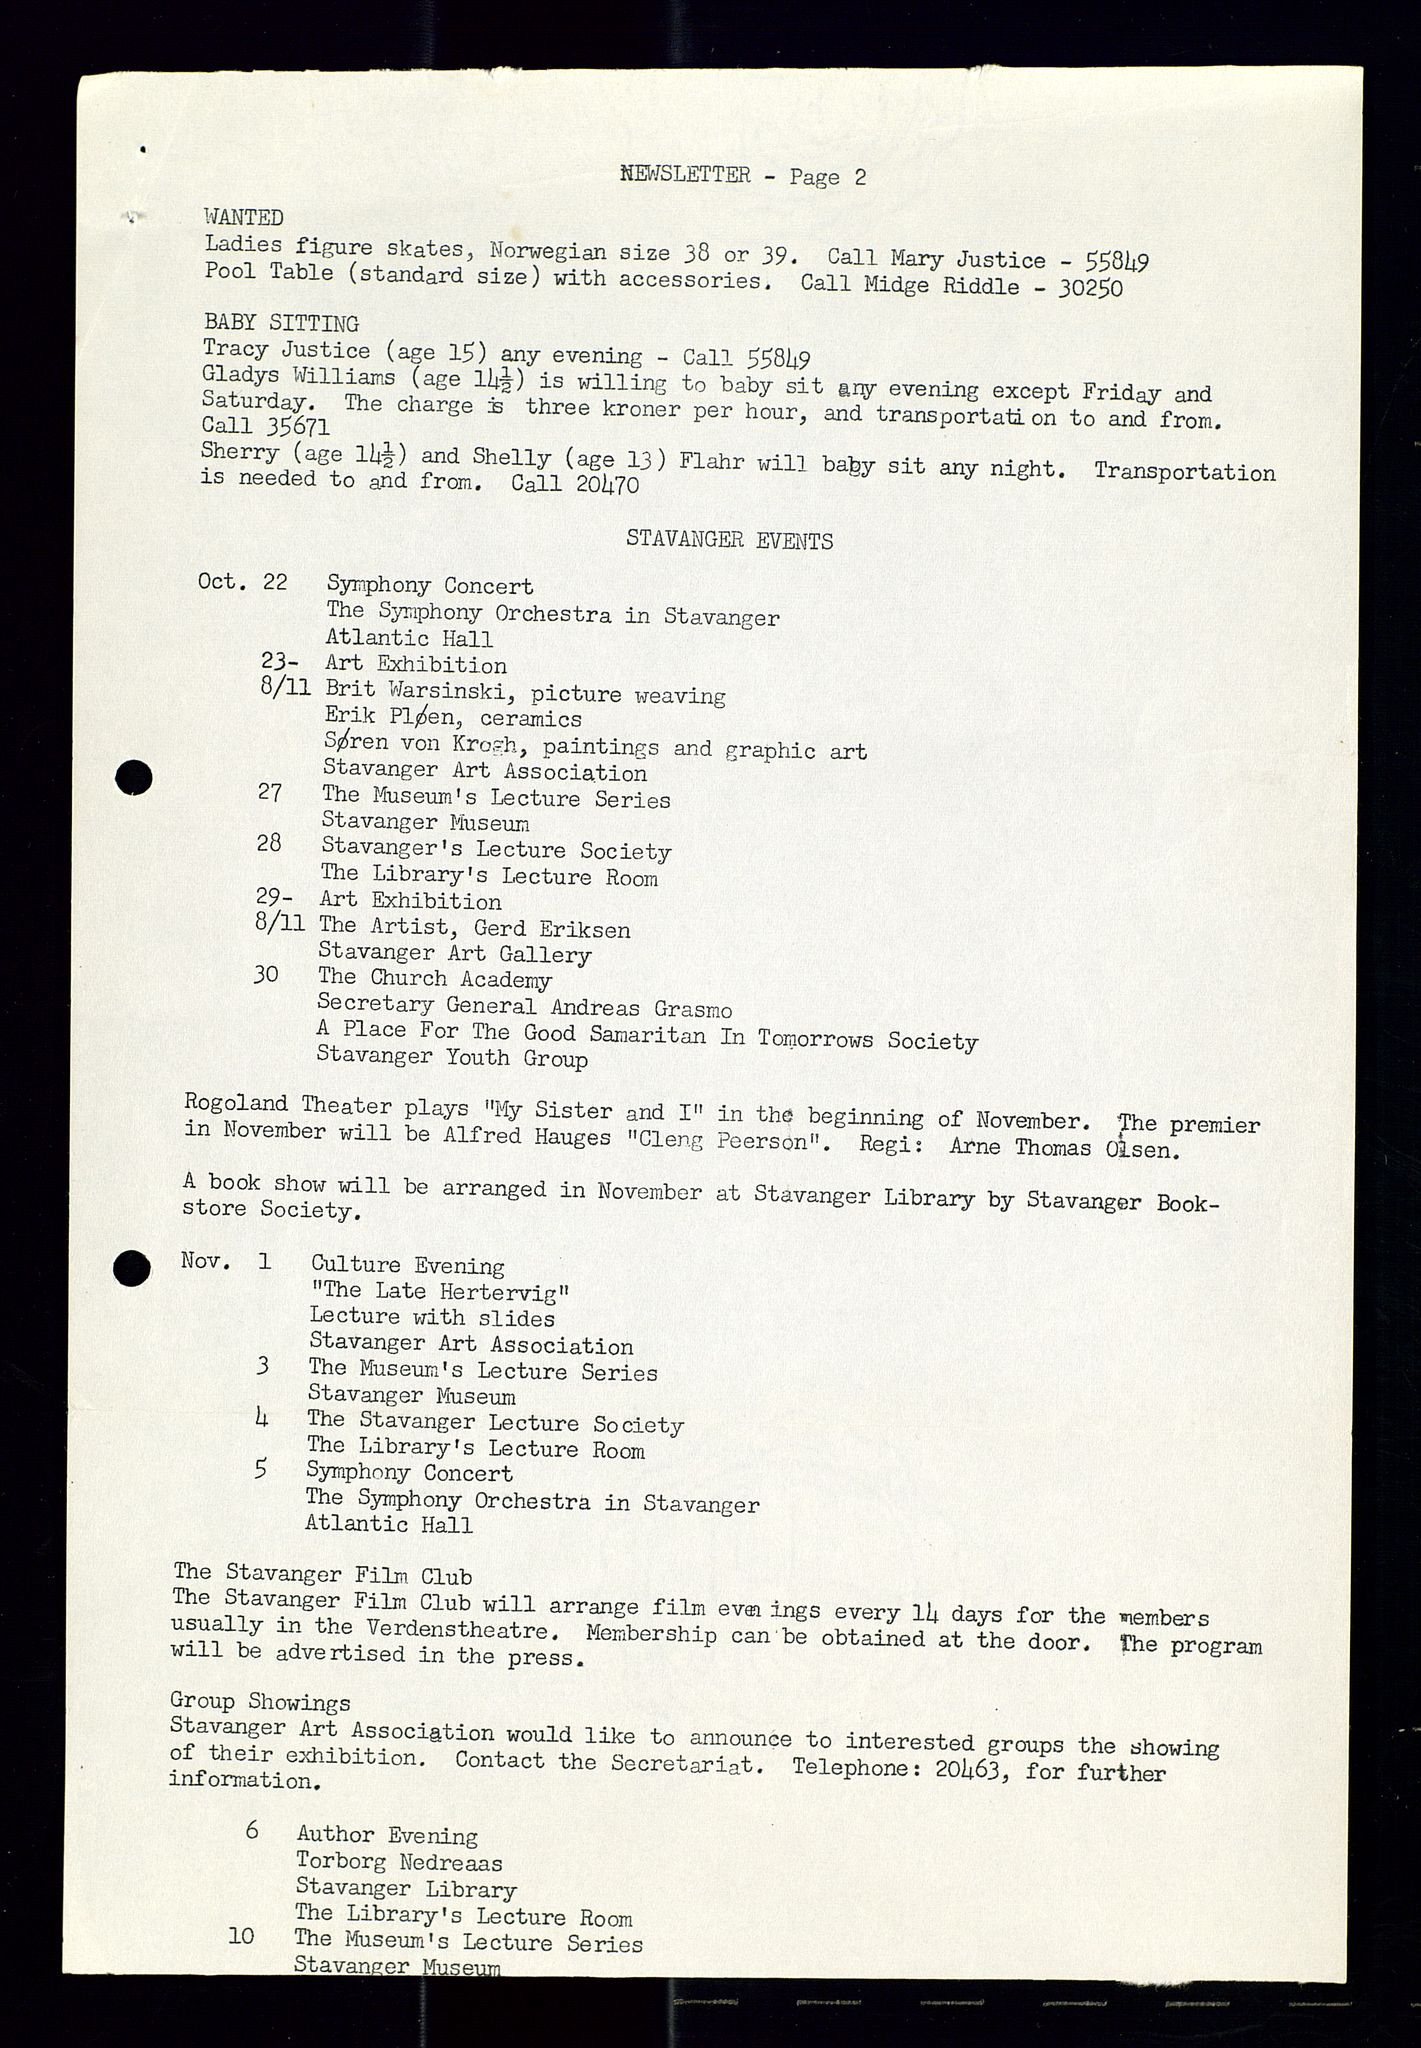 SAST, PA 1547 - Petroleum Wives Club, X/Xa/L0001: Newsletter, 1970-1978